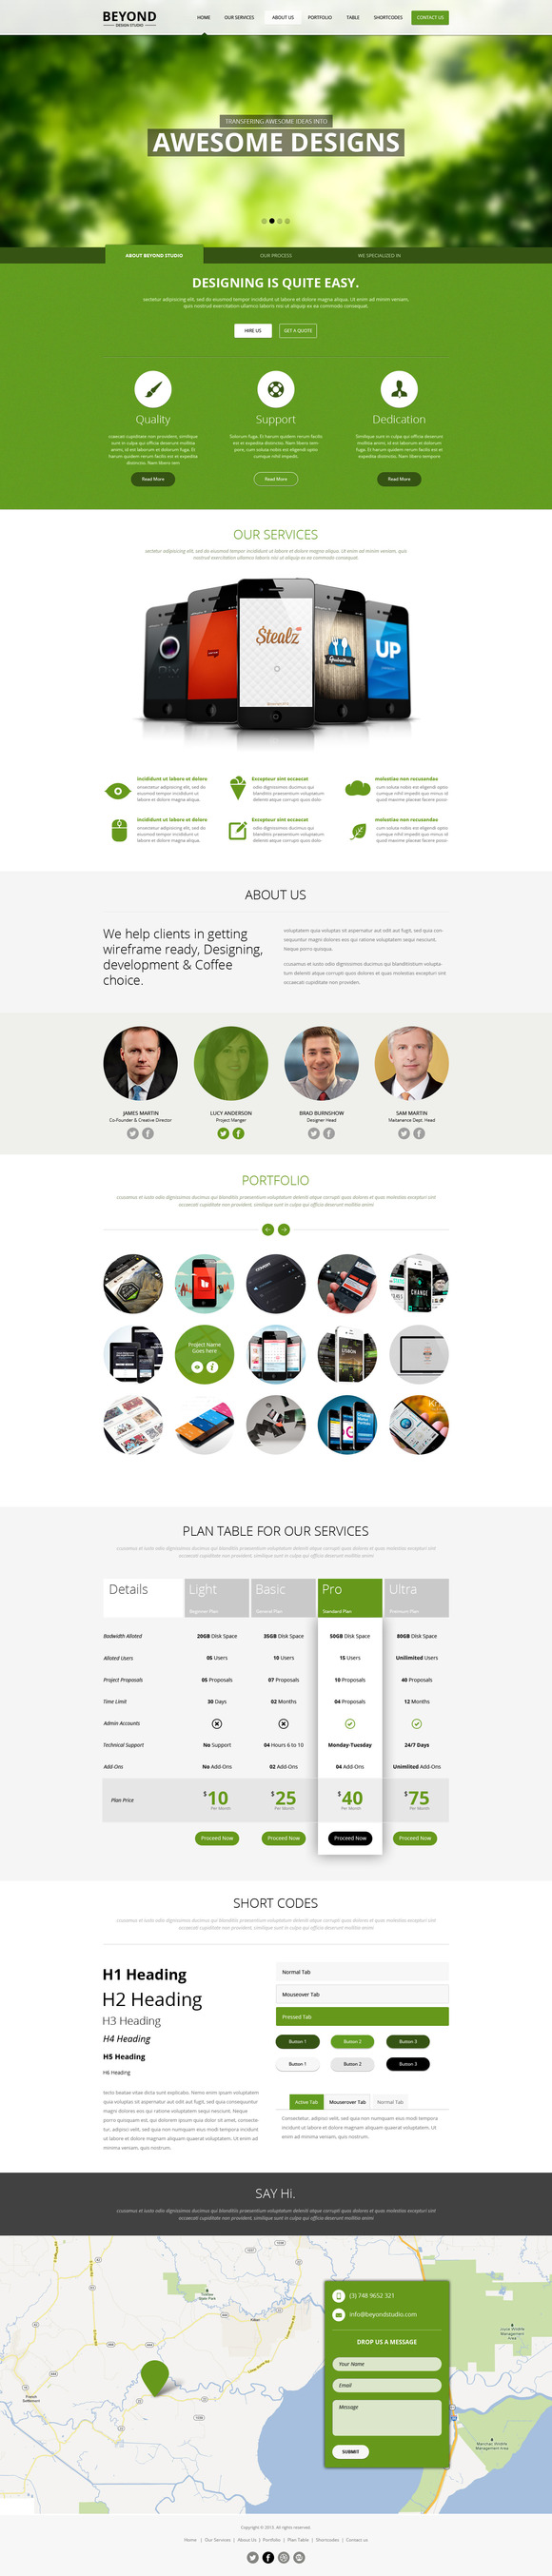 Beyond One Page PSD Template